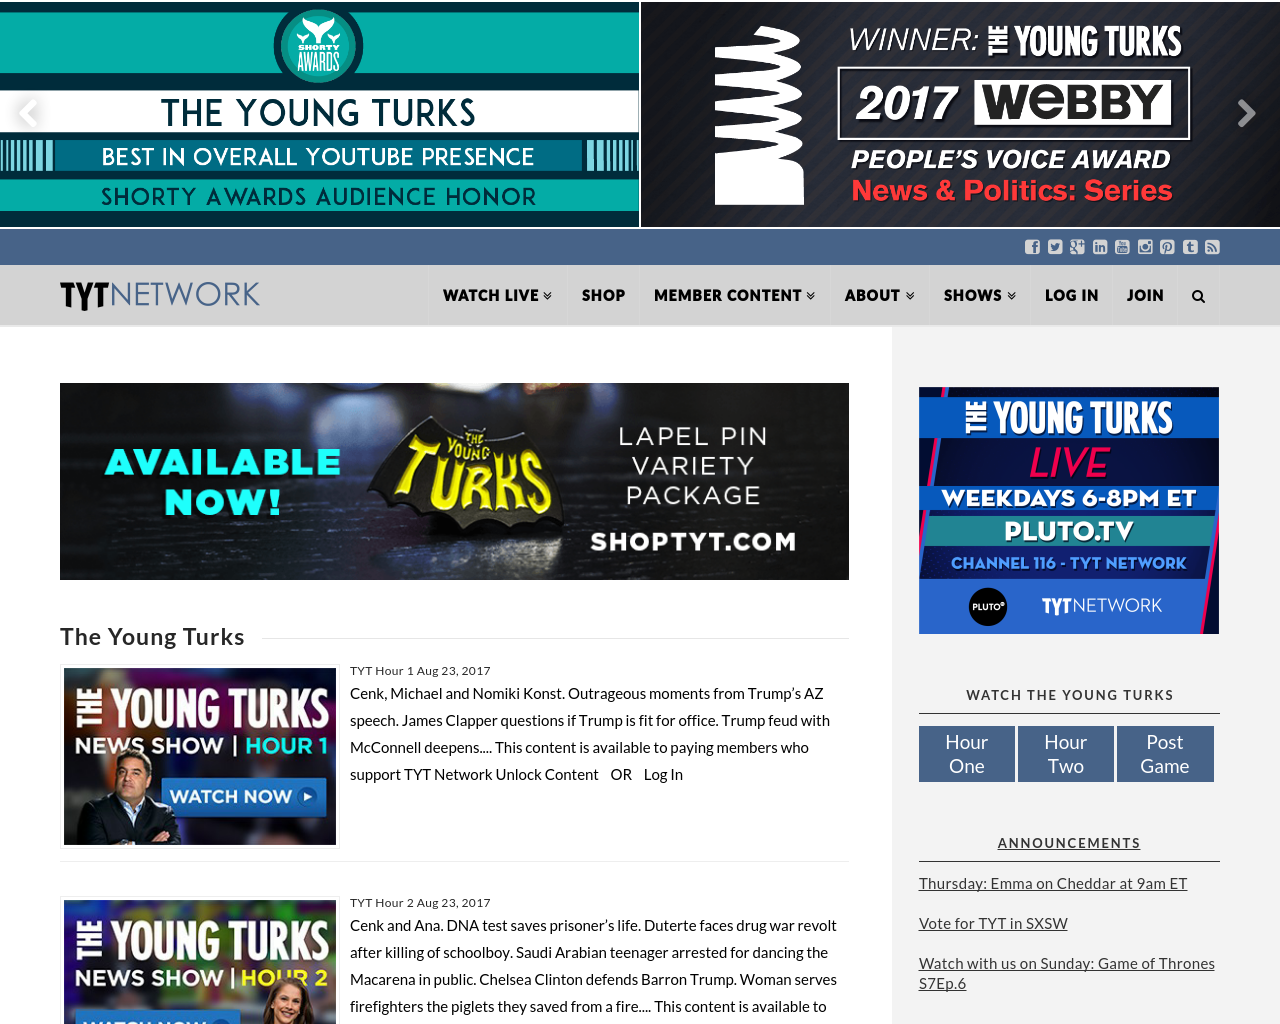 The-Young-Turks-Network-Advertising-Reviews-Pricing